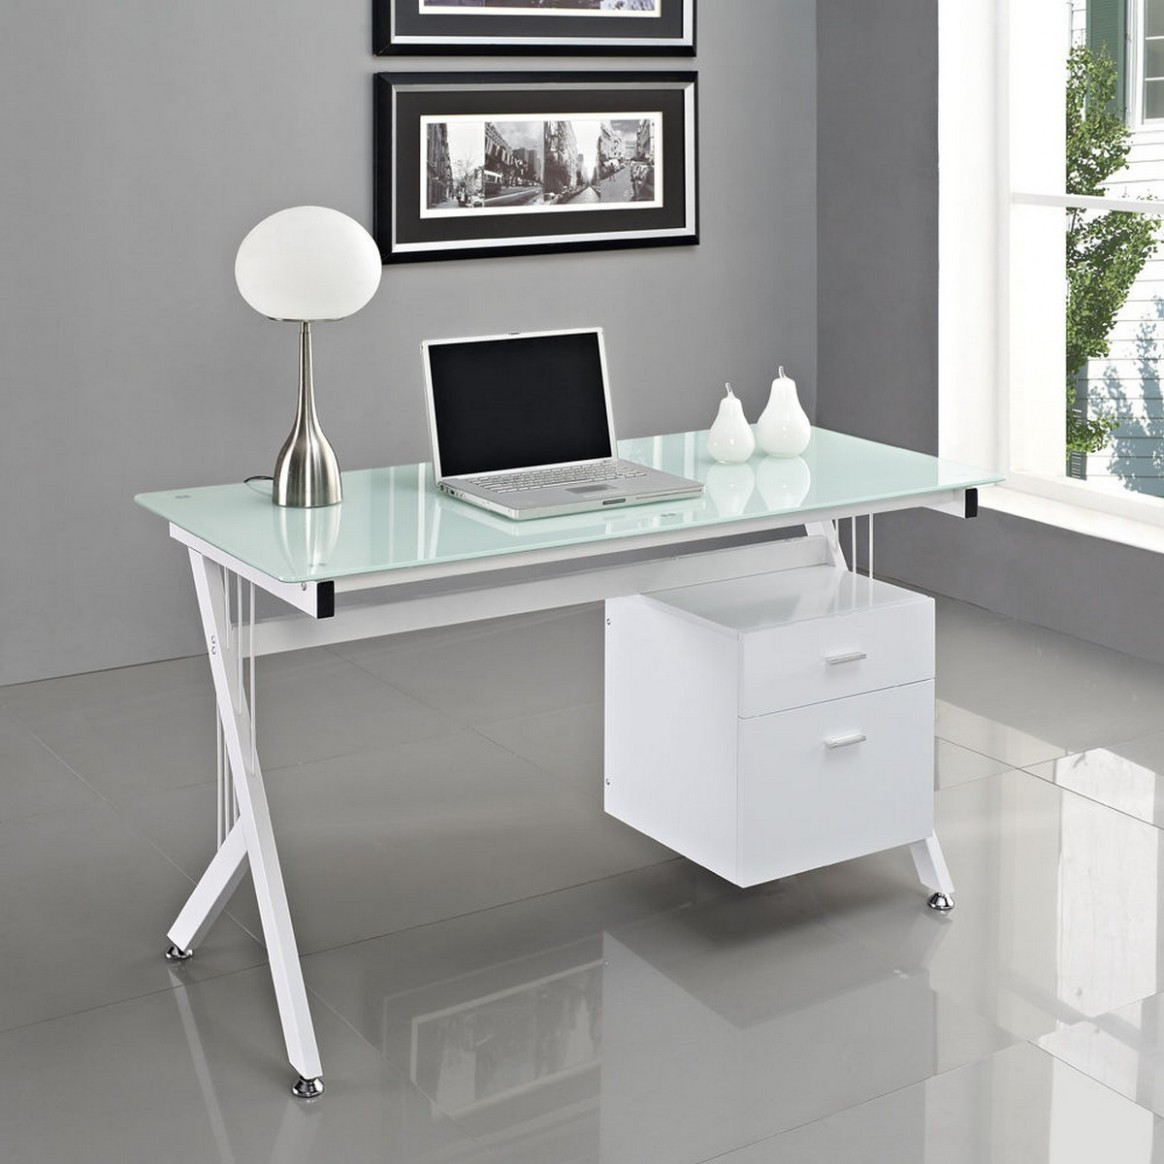 White Glass Computer Desk PC Table Home Office  Minimalist Desk  - Home Office Ideas With Glass Desk